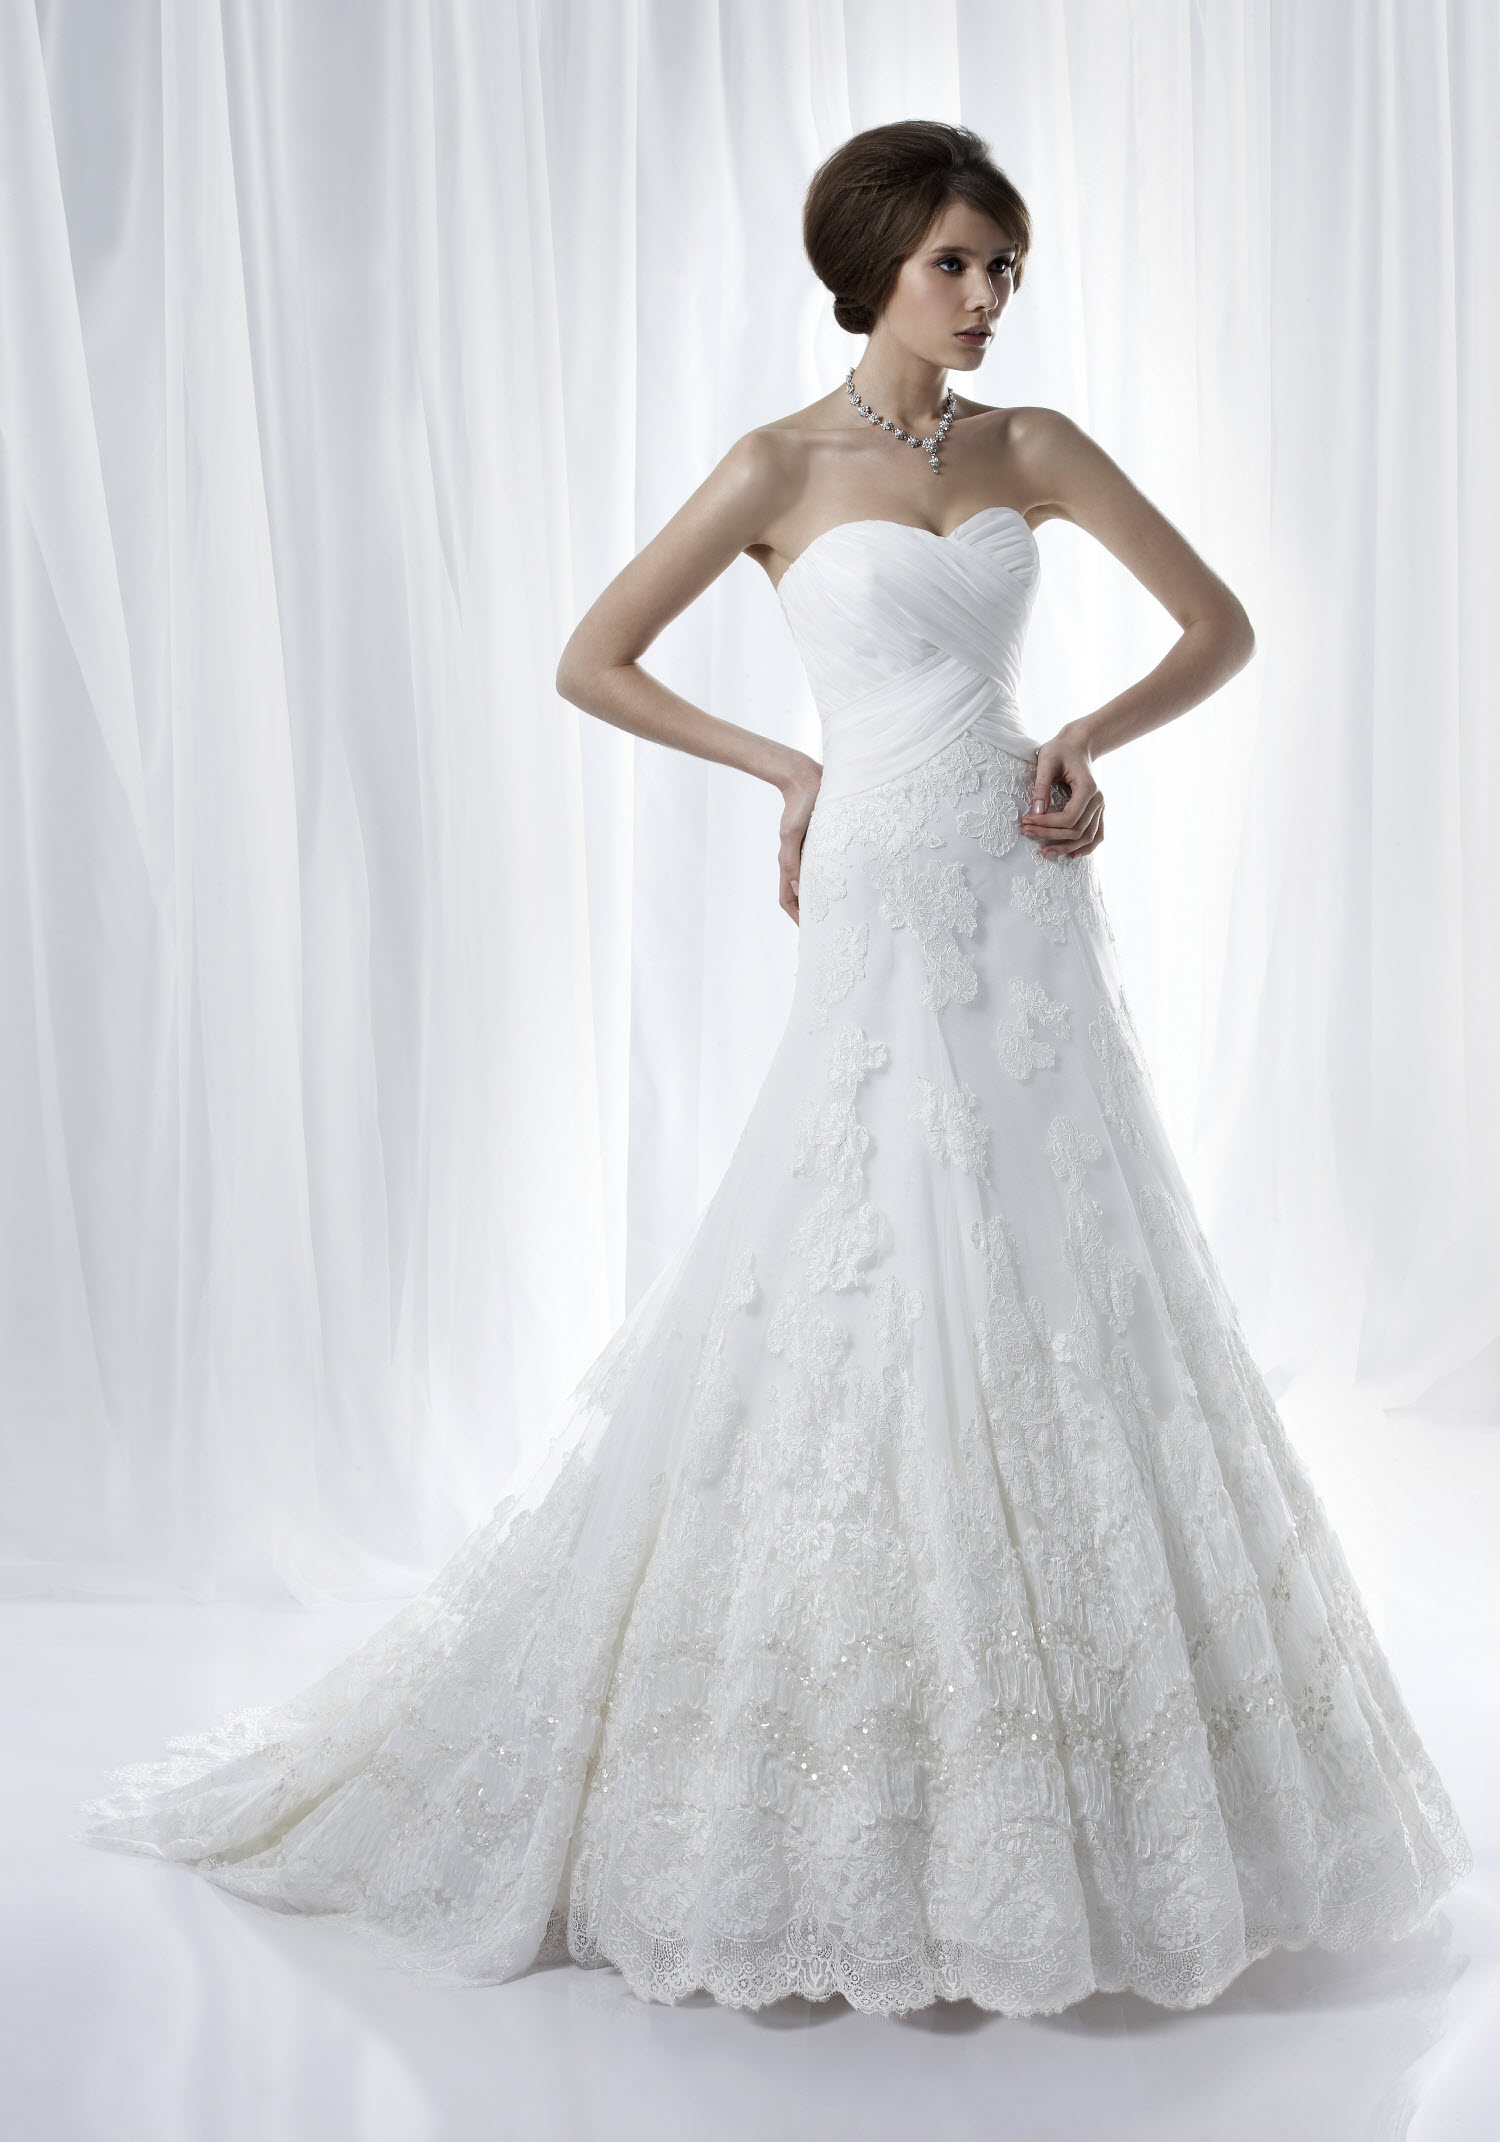 Romantic bridal white strapless